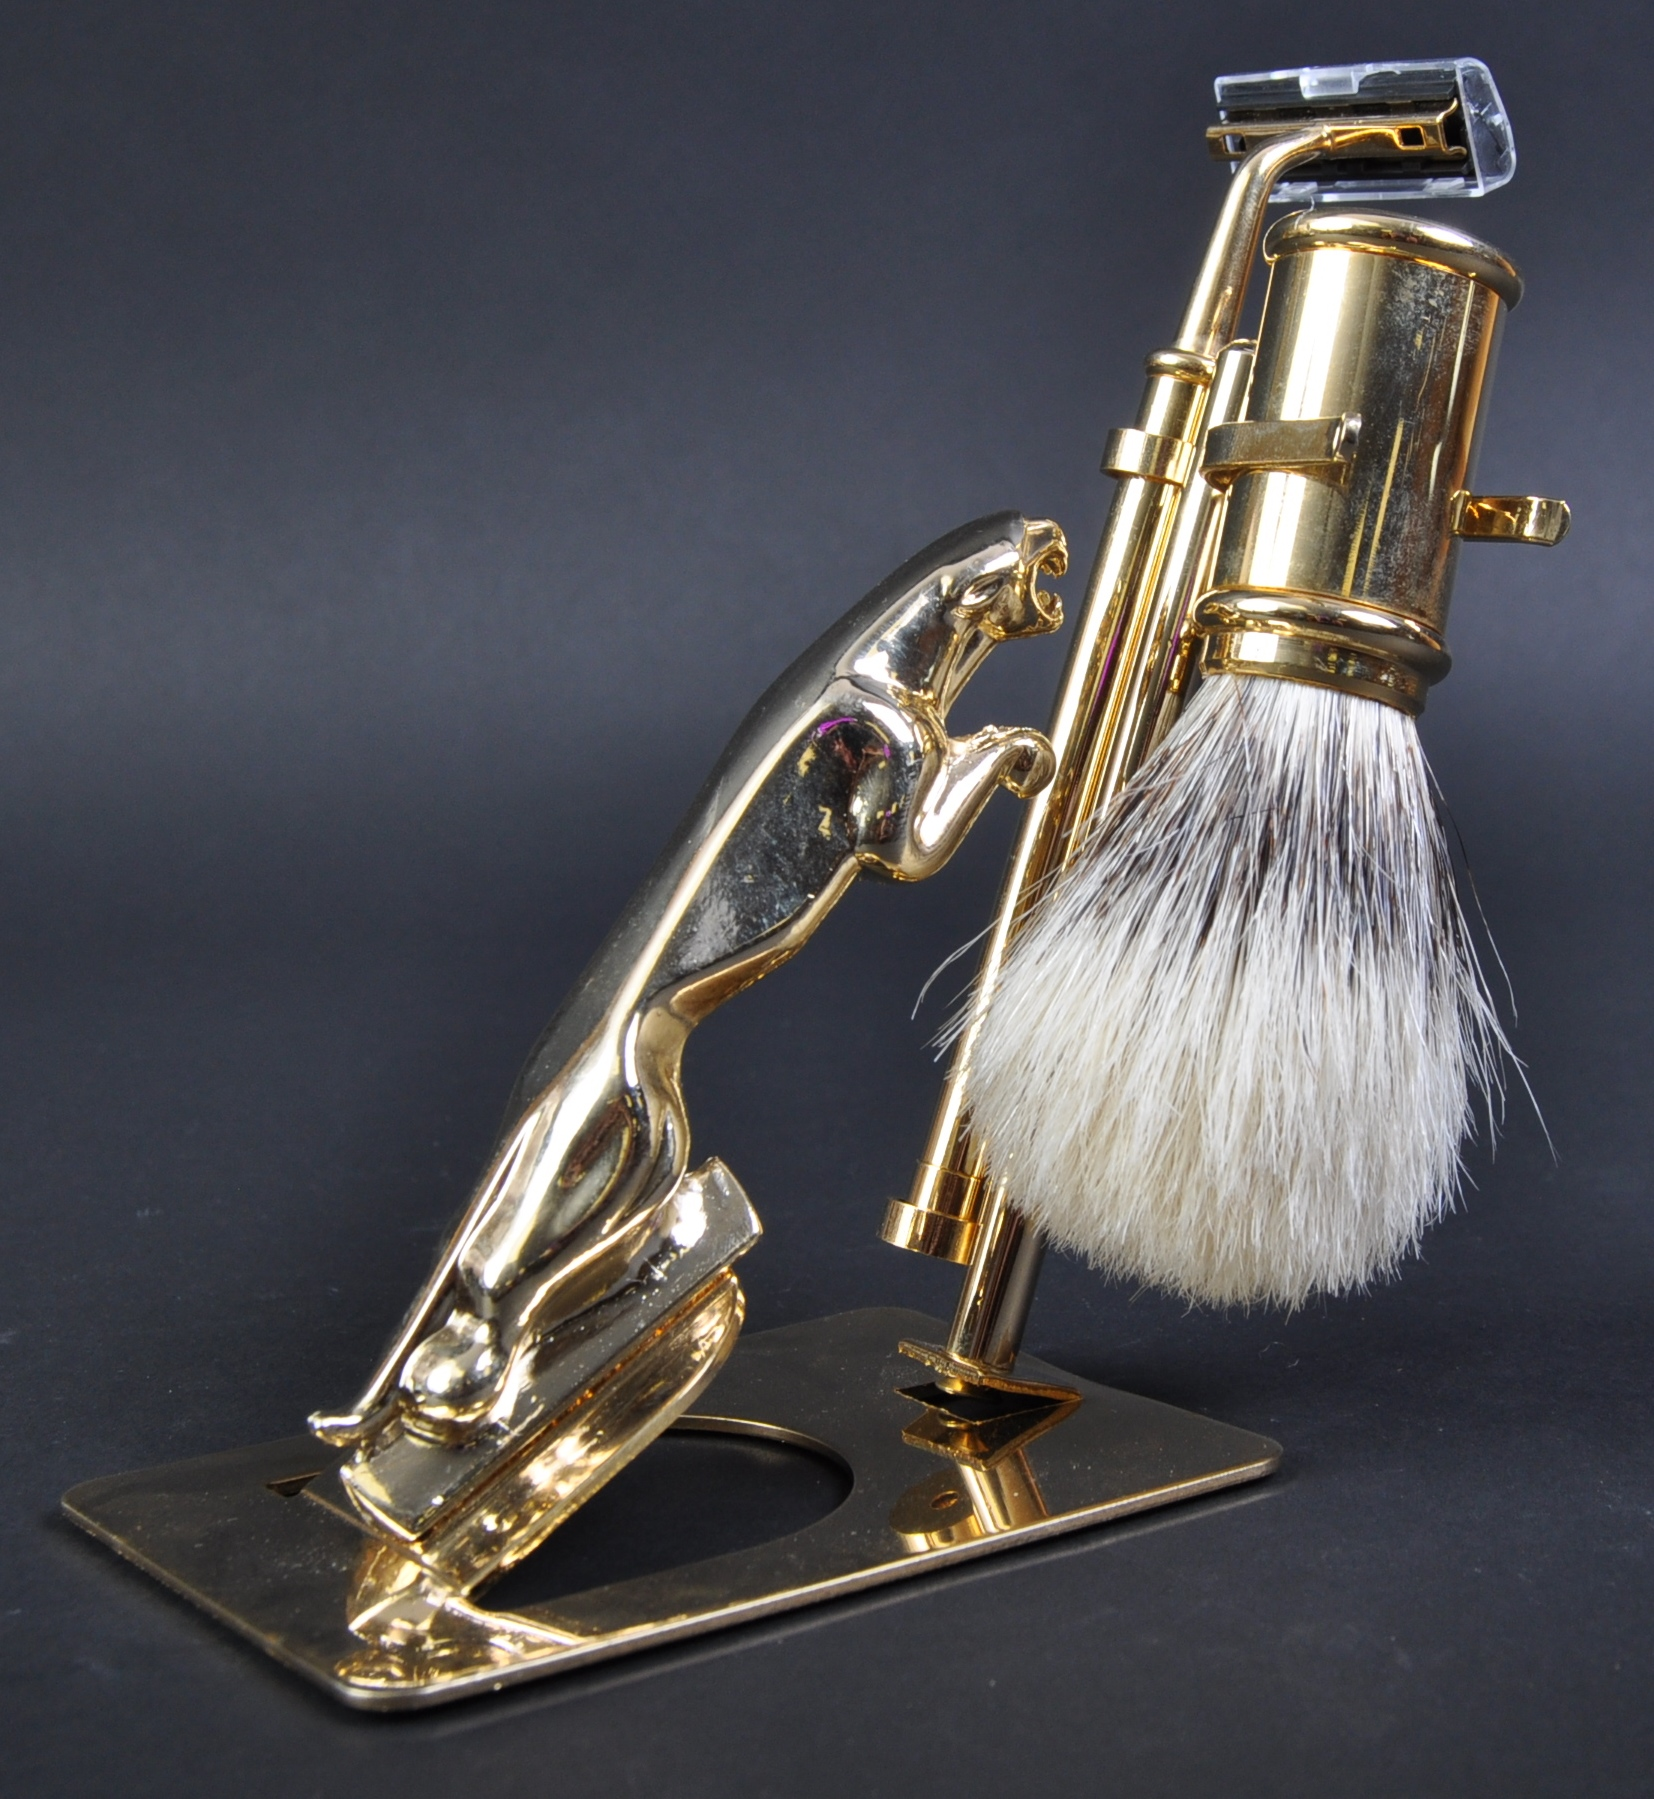 JAGUAR - 20TH CENTURY GENTLEMEN'S SHAVING KIT WITH MASCOT